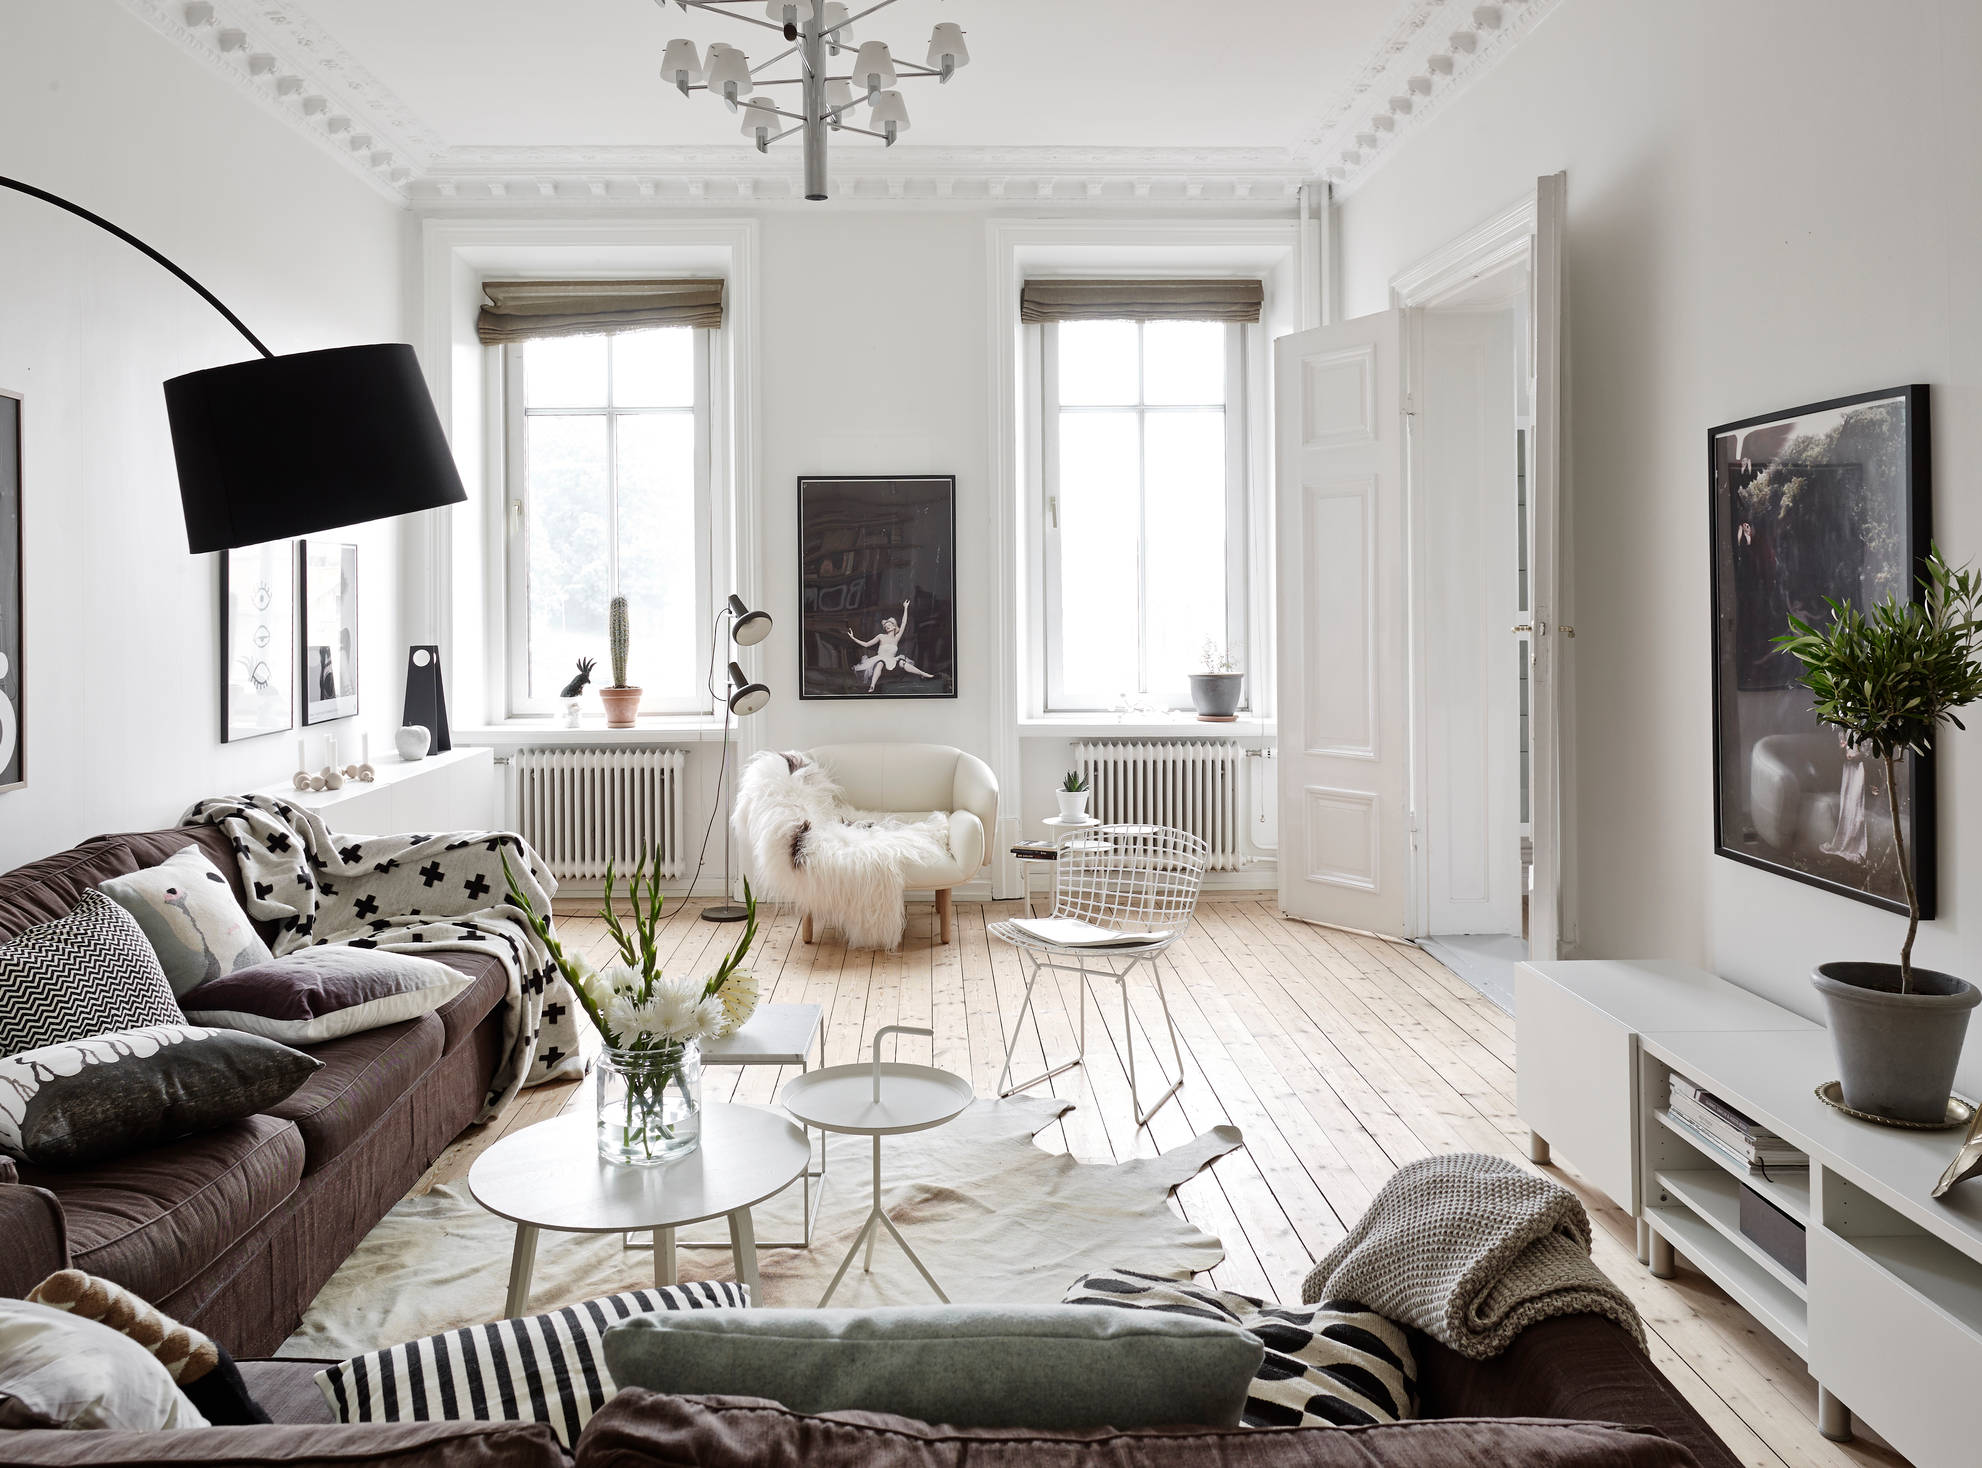 Ambiance cocooning planete deco a homes world Wohnzimmer scandi style